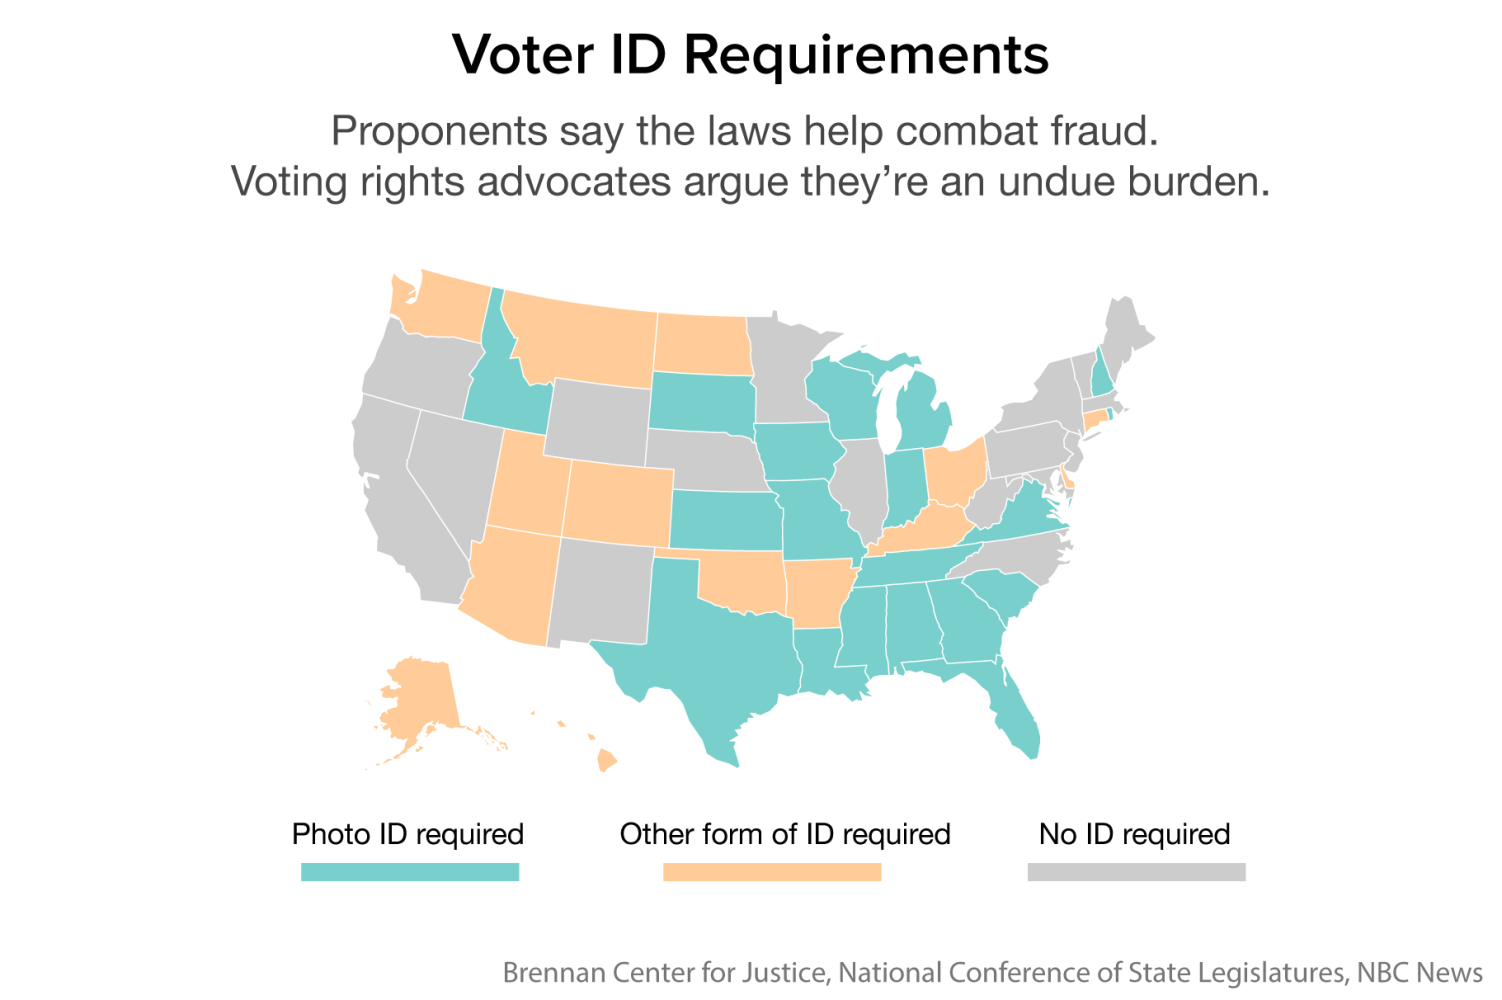 Texas And Missouri Are Requiring Affidavits Legal Doents That Voters Without The Required Id Must First Sign To Cast Ballots